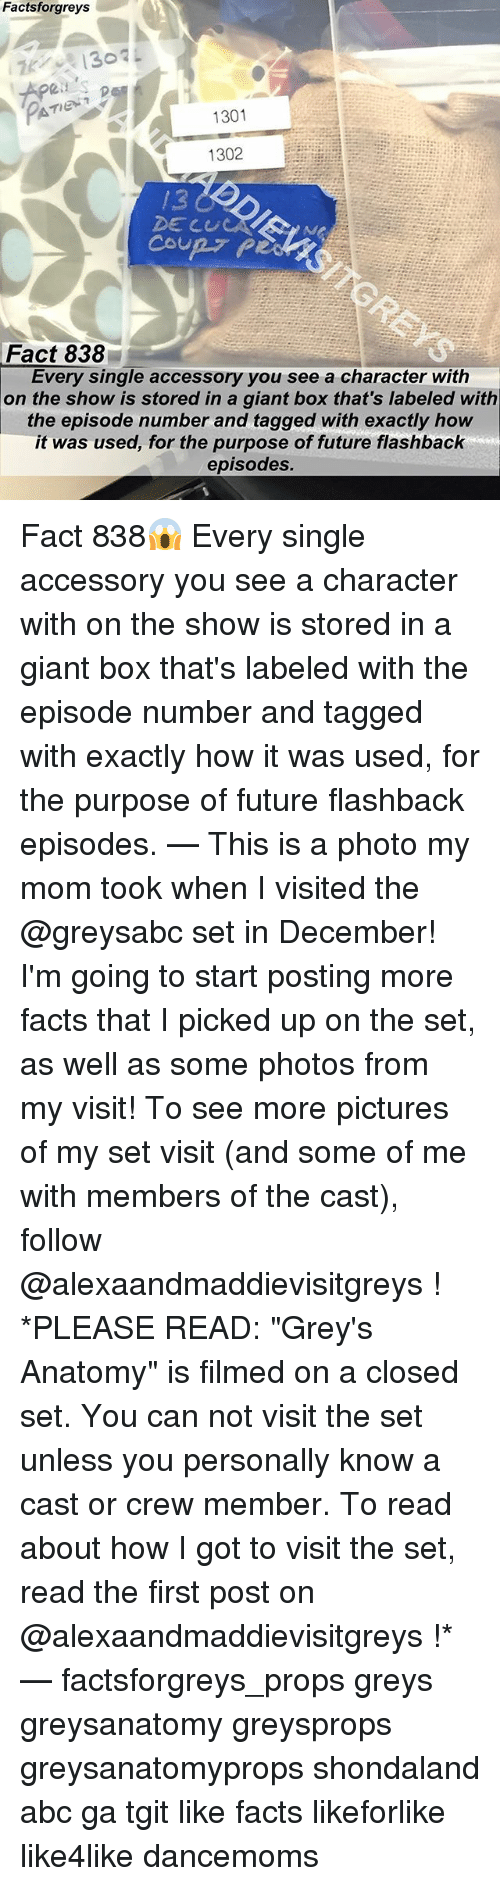 """Abc, Facts, and Future: Factsforgreys  Apeis  1301  1302  /3  DE CUL  Fact 838  Every single accessory you see a character with  on the show is stored in a giant box that's labeled with  the episode number and tagged with exactly how  it was used, for the purpose of future flashback  episodes. Fact 838😱 Every single accessory you see a character with on the show is stored in a giant box that's labeled with the episode number and tagged with exactly how it was used, for the purpose of future flashback episodes. — This is a photo my mom took when I visited the @greysabc set in December! I'm going to start posting more facts that I picked up on the set, as well as some photos from my visit! To see more pictures of my set visit (and some of me with members of the cast), follow @alexaandmaddievisitgreys ! *PLEASE READ: """"Grey's Anatomy"""" is filmed on a closed set. You can not visit the set unless you personally know a cast or crew member. To read about how I got to visit the set, read the first post on @alexaandmaddievisitgreys !* — factsforgreys_props greys greysanatomy greysprops greysanatomyprops shondaland abc ga tgit like facts likeforlike like4like dancemoms"""